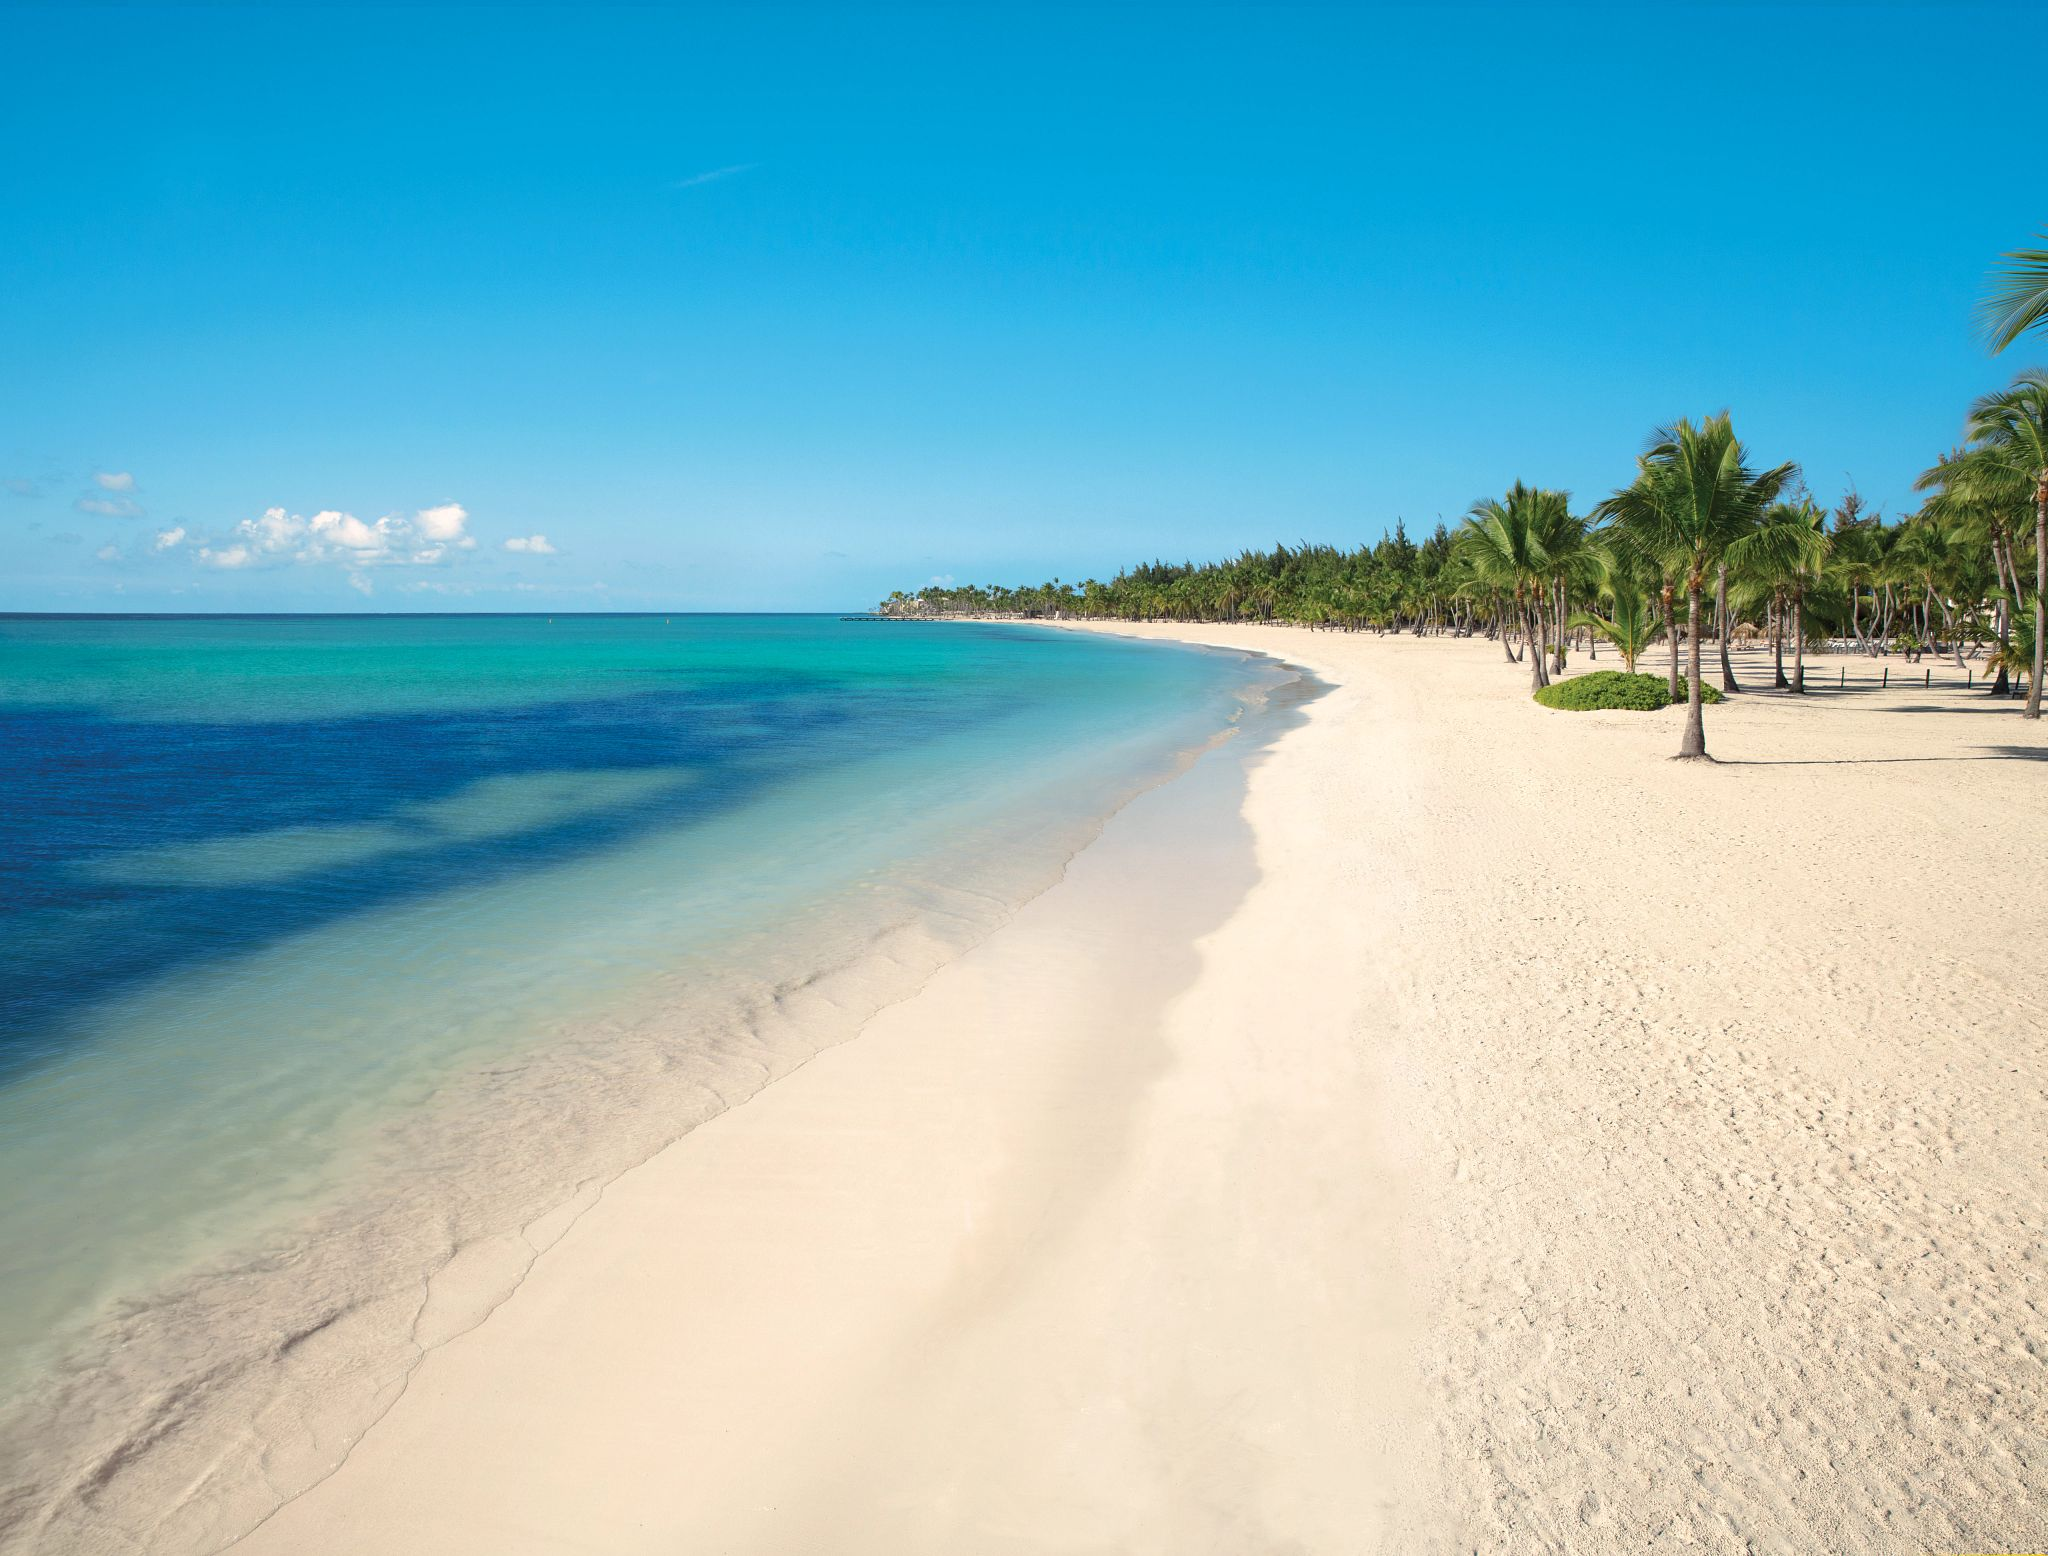 white sand beach and palm trees